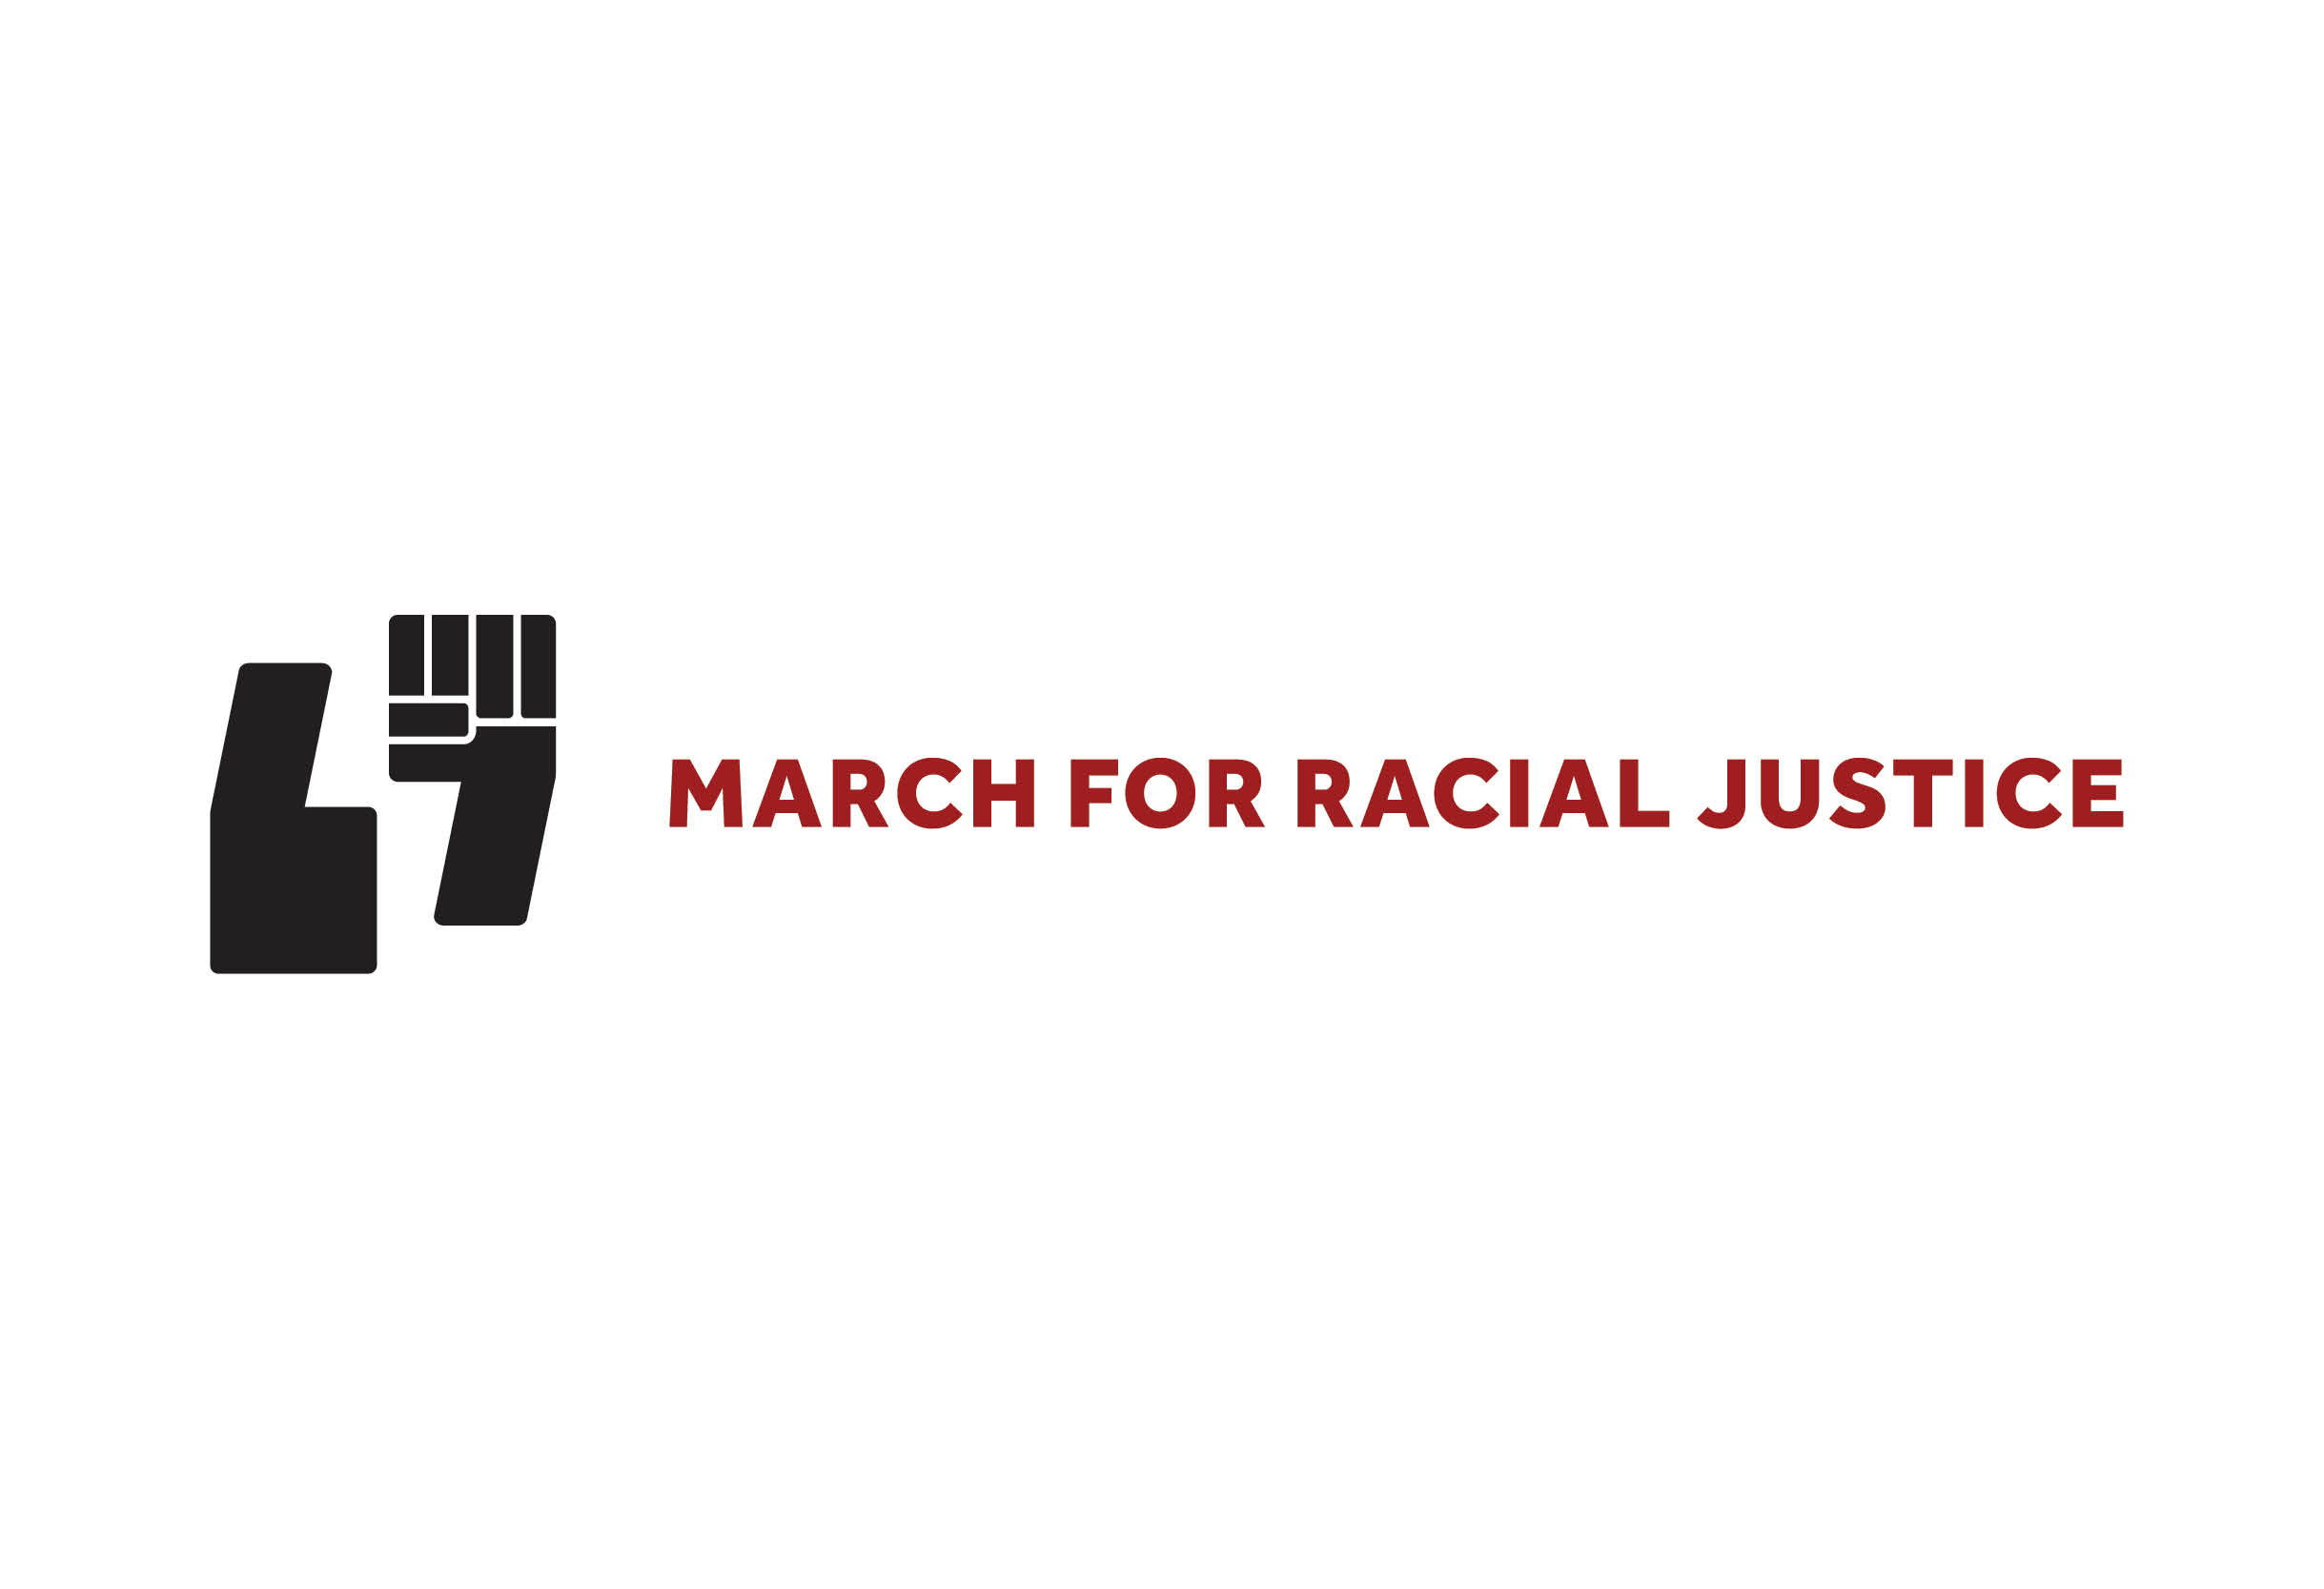 March for Racial Justice logo mark